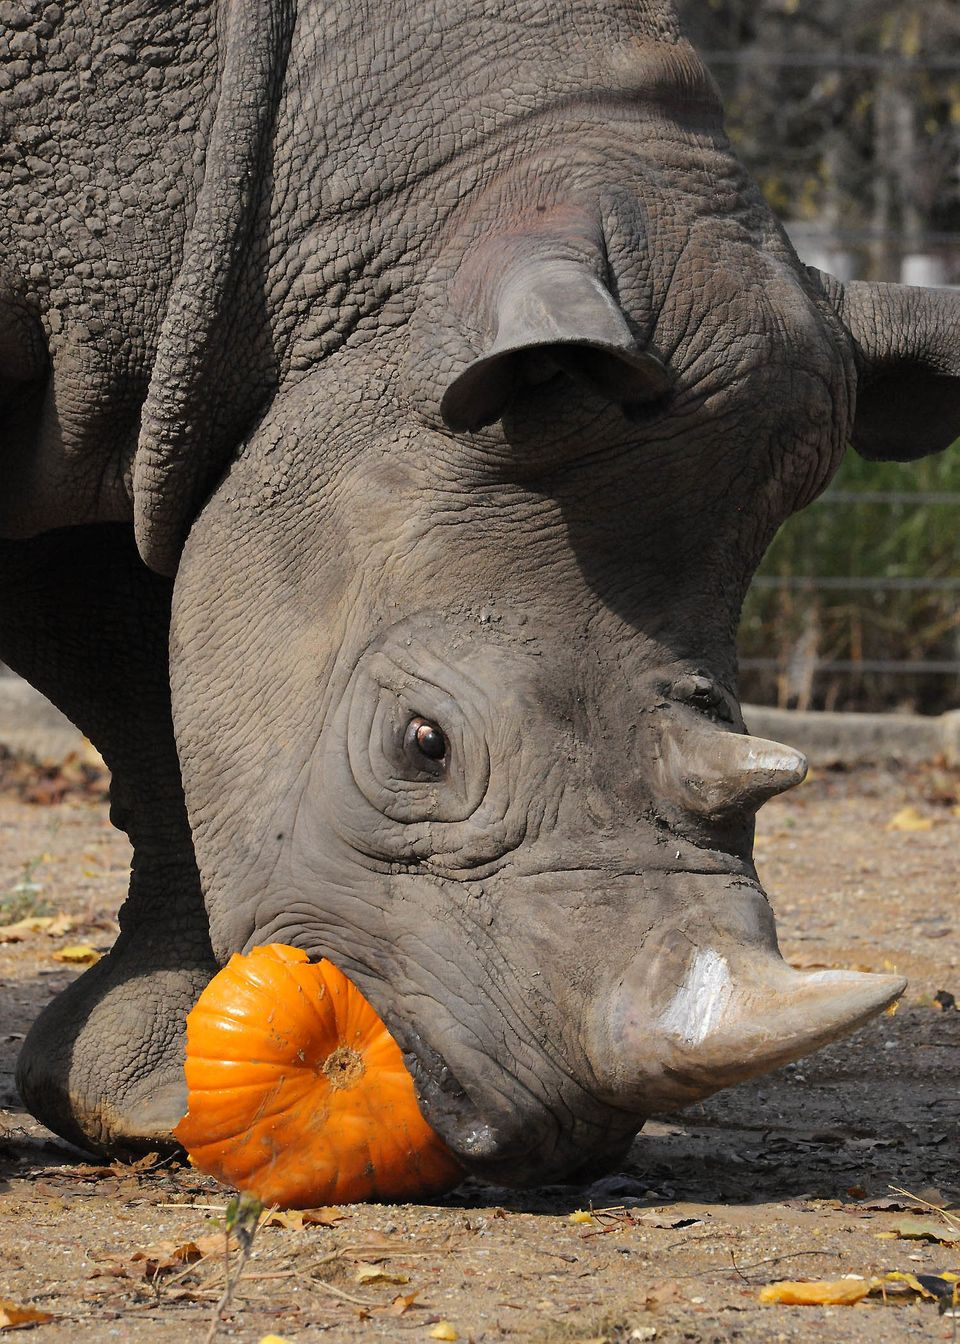 Jimma, a 27-year-old male rhino at Brookfield Zoo, seemed to enjoy a Halloween treat--a pumpkin.